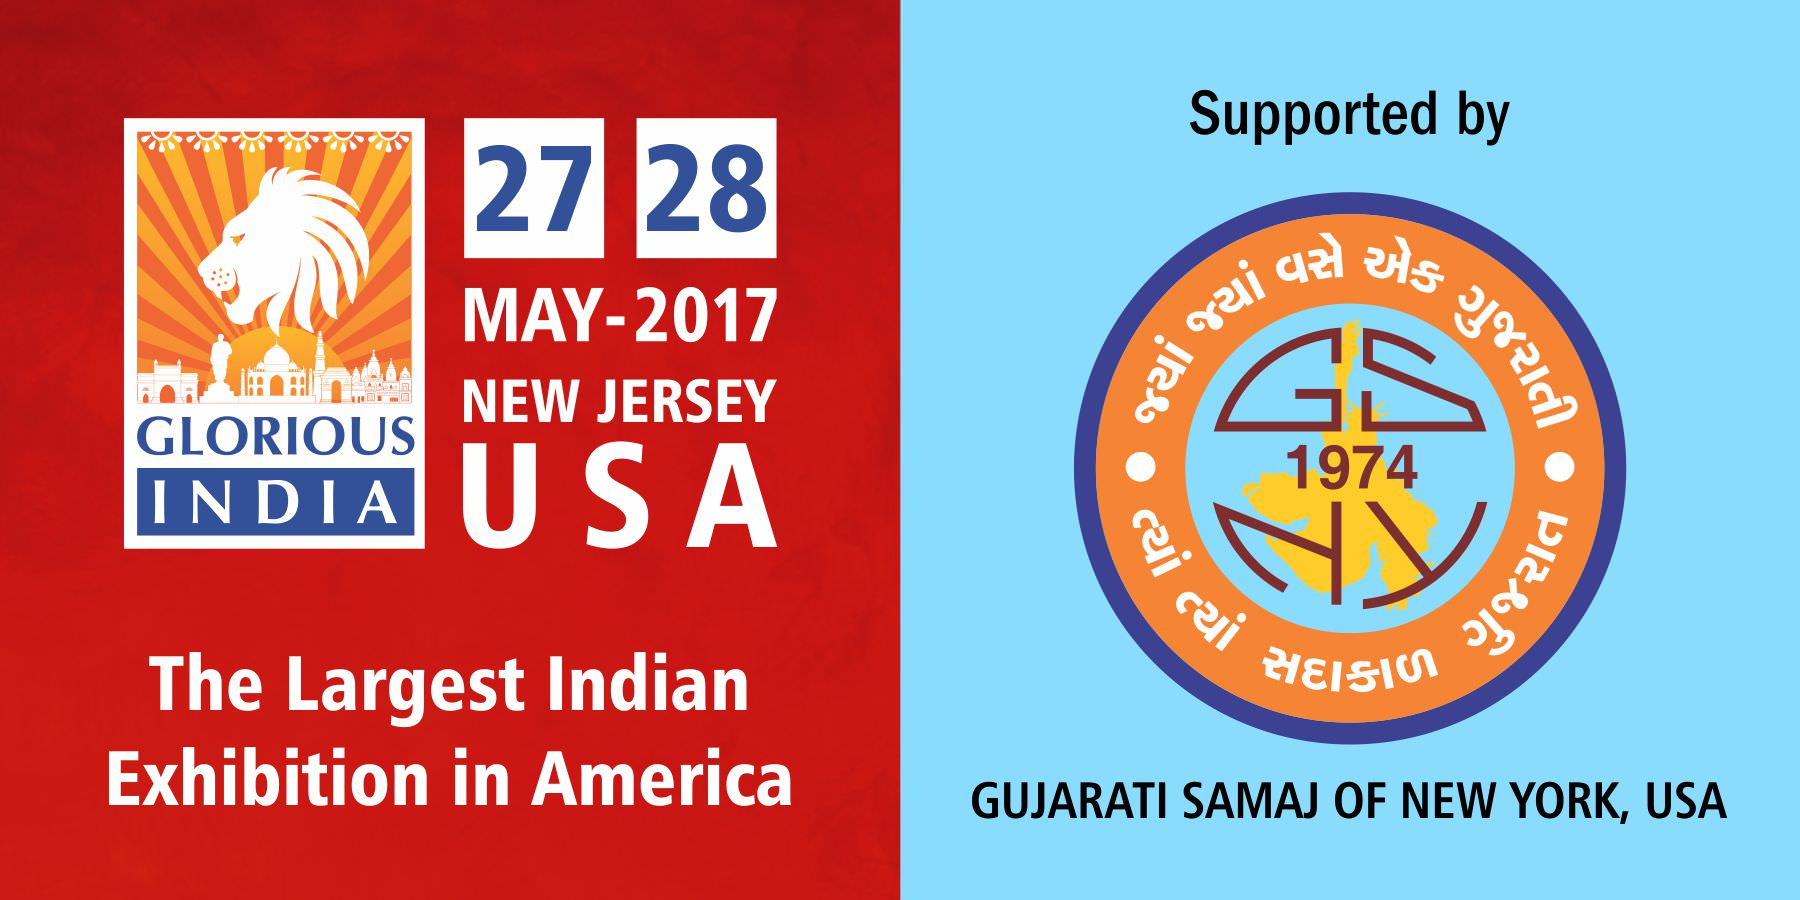 Glorious India Expo - Gujarati Samaj of New York, USA